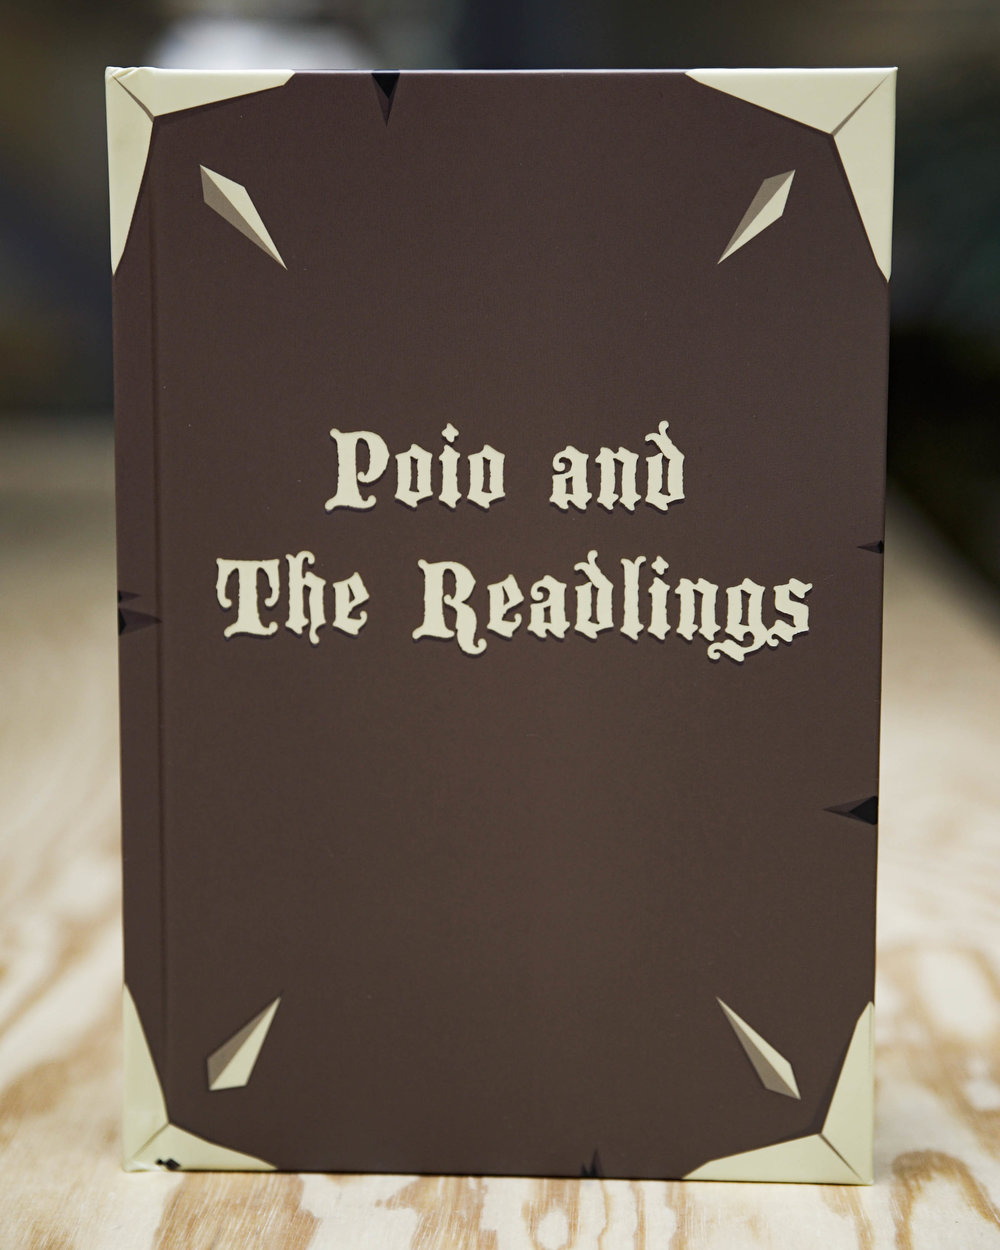 Poio-and-the-readlings-front